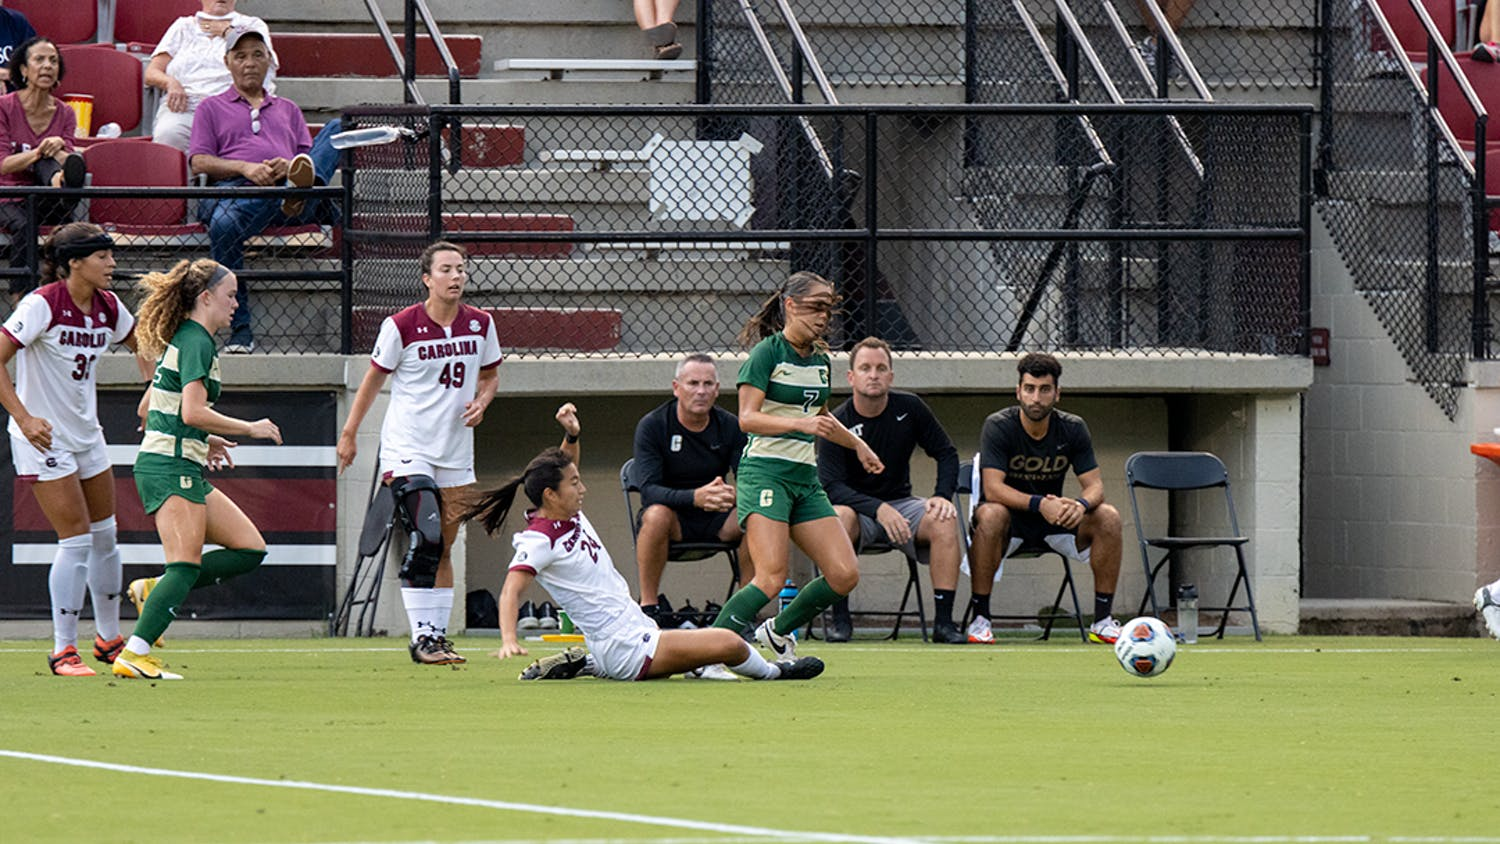 Graduate student midfielder Lauren Chang slides and removes control of the ball from Charlotte player. Chang assisted a goal made by junior forward Eveleen Hahn during the first half.